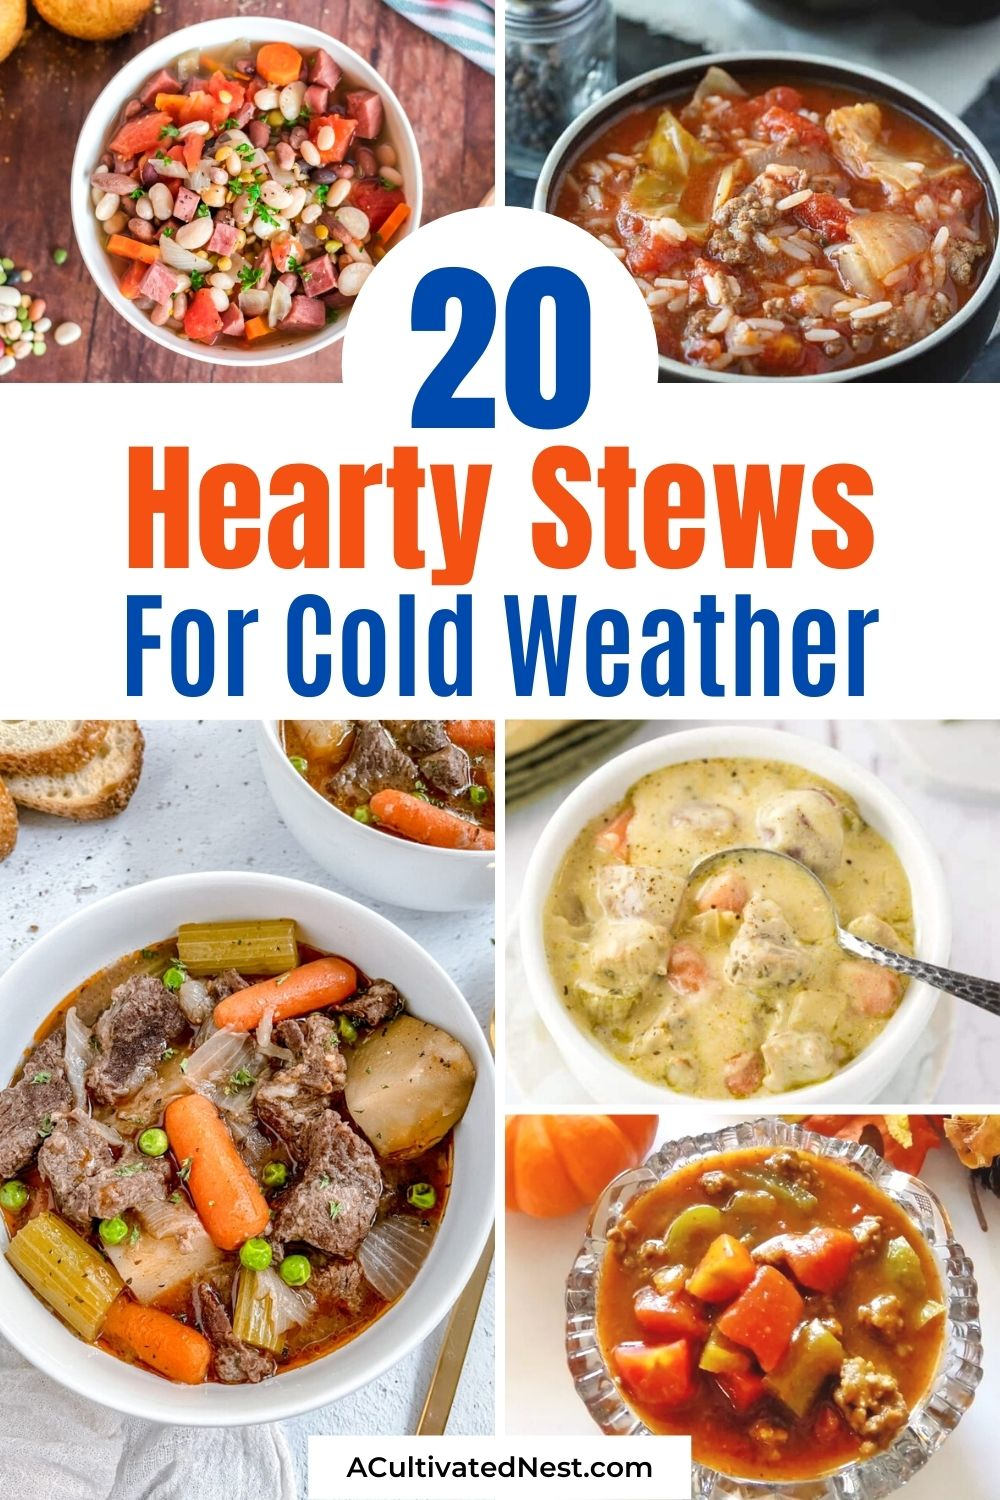 20 Hearty Stews for Cold Weather- This fall and winter, curl up in your favorite chair with one of these hearty stews. It'll help make you warm and happy on any cold day! | fall stew recipe, winter stew recipe, slow cooker stew recipe, Crock-Pot stew recipe #stewRecipes #recipes #winterRecipes #CrockPotRecipe #ACultivatedNest